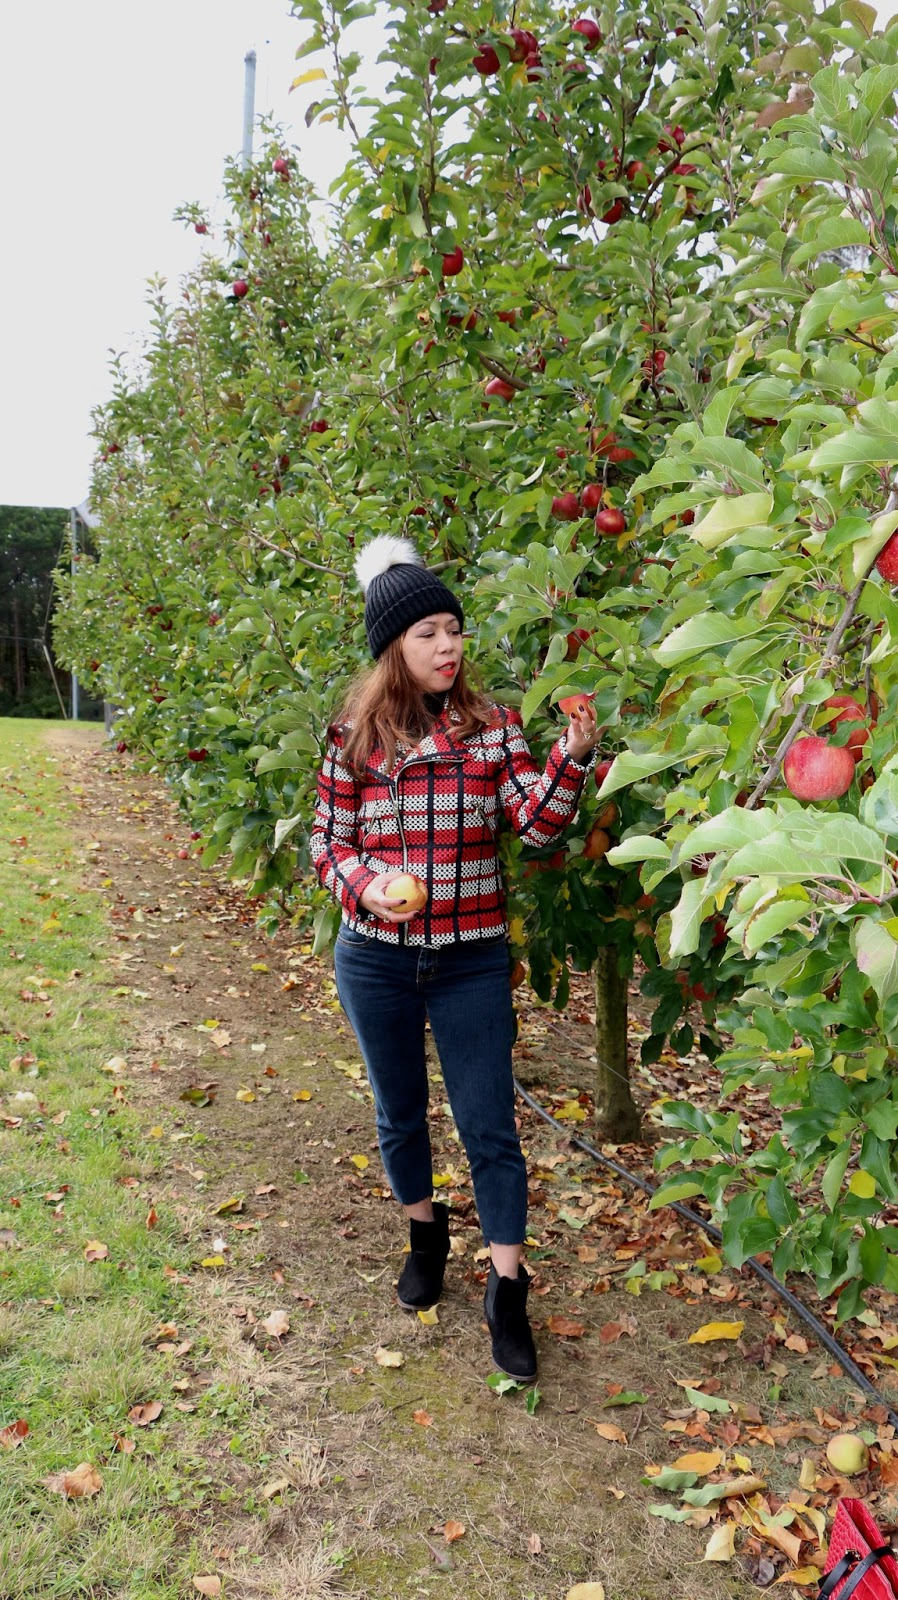 What to wear when picking apples